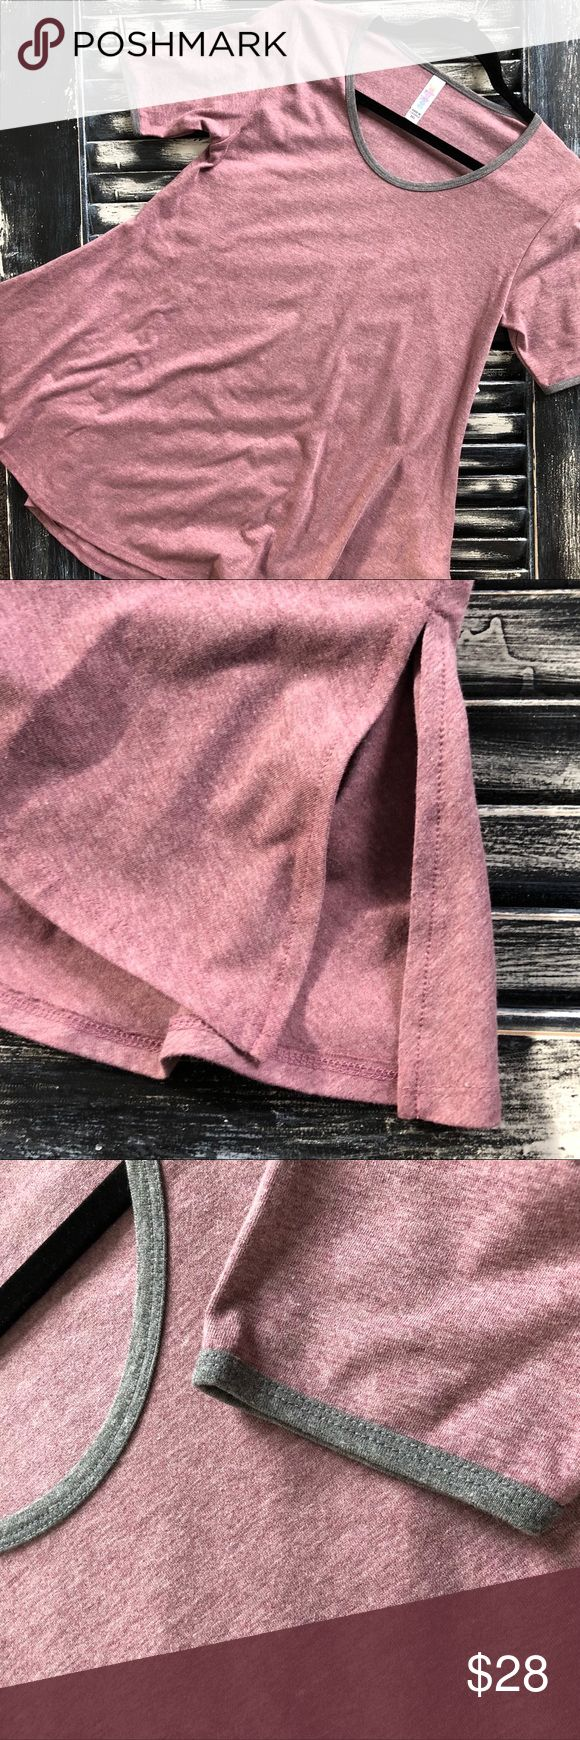 🏹❤️ Perfect T Ringer | LuLaRoe A-line Flowing NWT🏷 Gray ringer detailing on sleeves and neckline.  LuLaRoe's Perfect T boasts a fun swing shape complimented by flirty side slits and a flattering half-sleeve that makes this simple, comfortable top the star of any outfit. Pair it with any of LuLaRoe's skirts and leggings for a look that can't be ignored!  Happy Valentines Day LuLaRoe Tops Tees - Short Sleeve